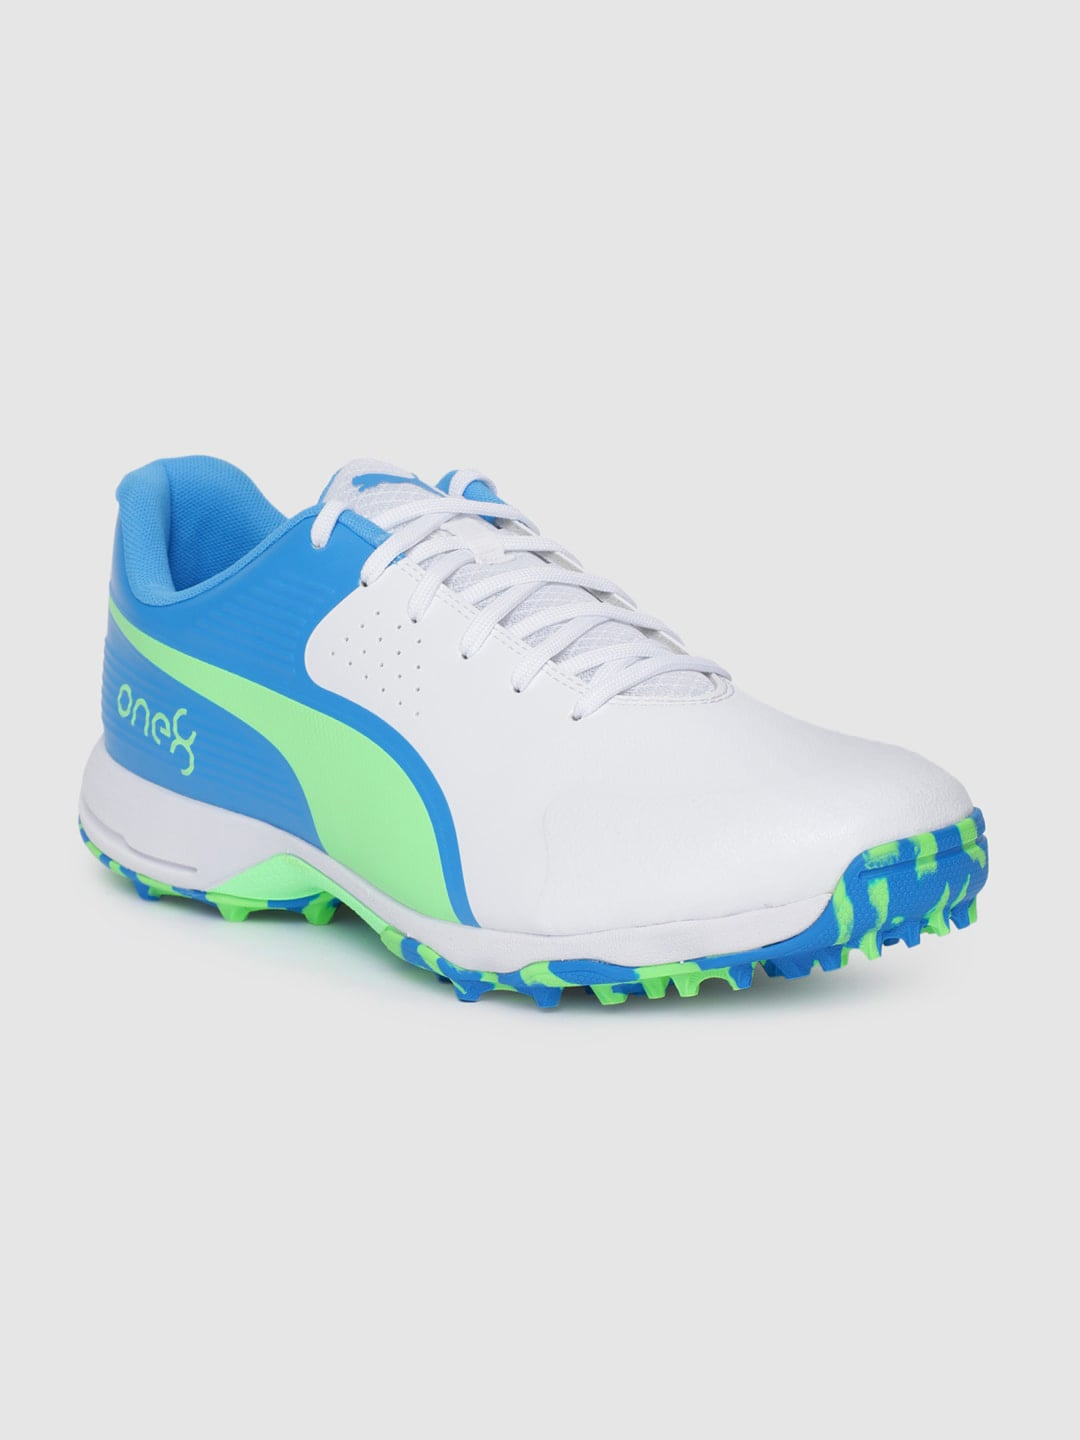 Puma Men White Synthetic 19 FH Cricket Shoes